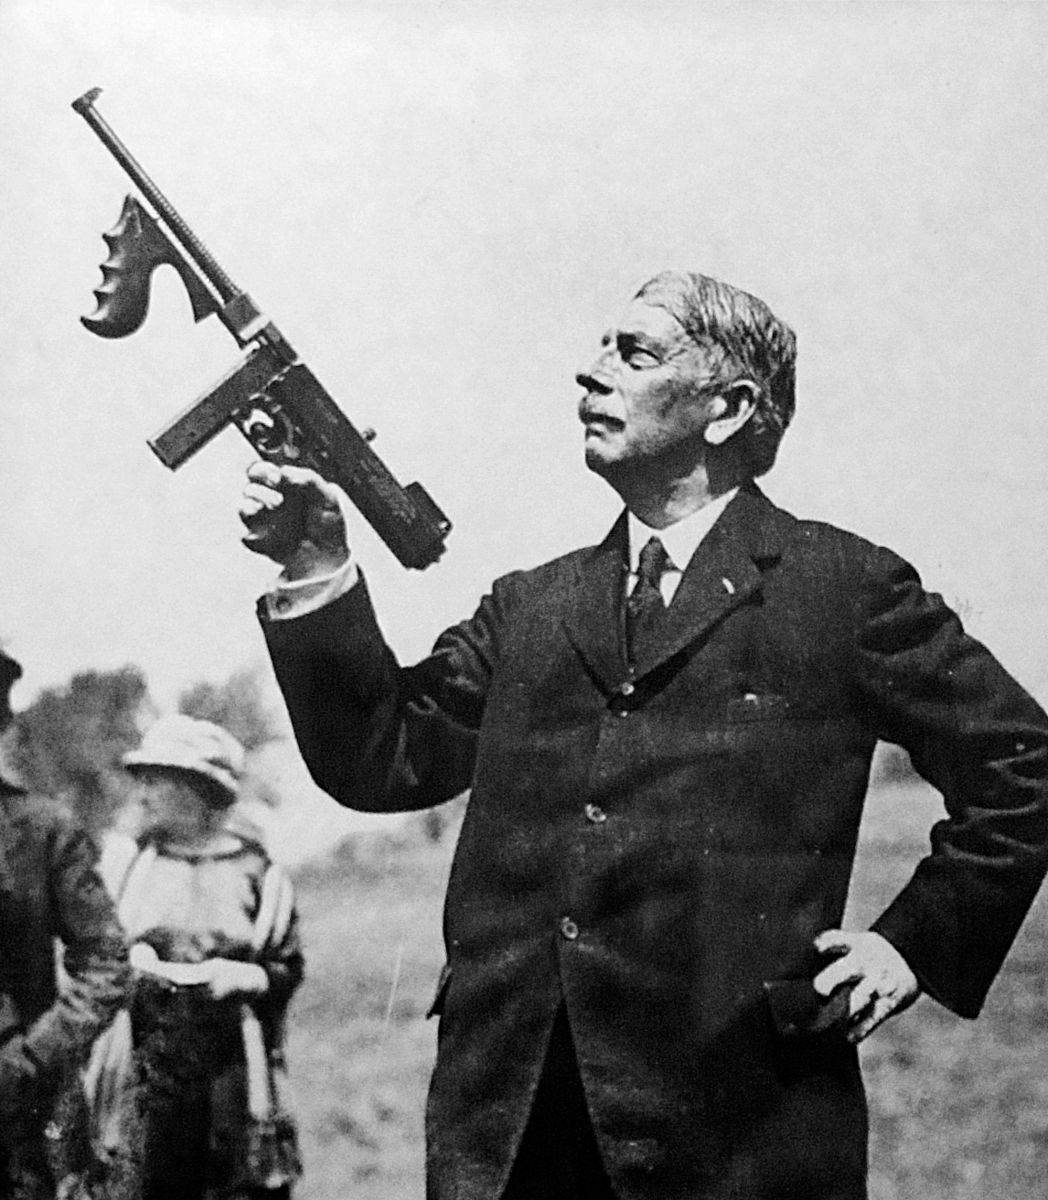 Thompson and his gun - Le General John Taliaferro Thompson et son bébé : La Thompson 1921